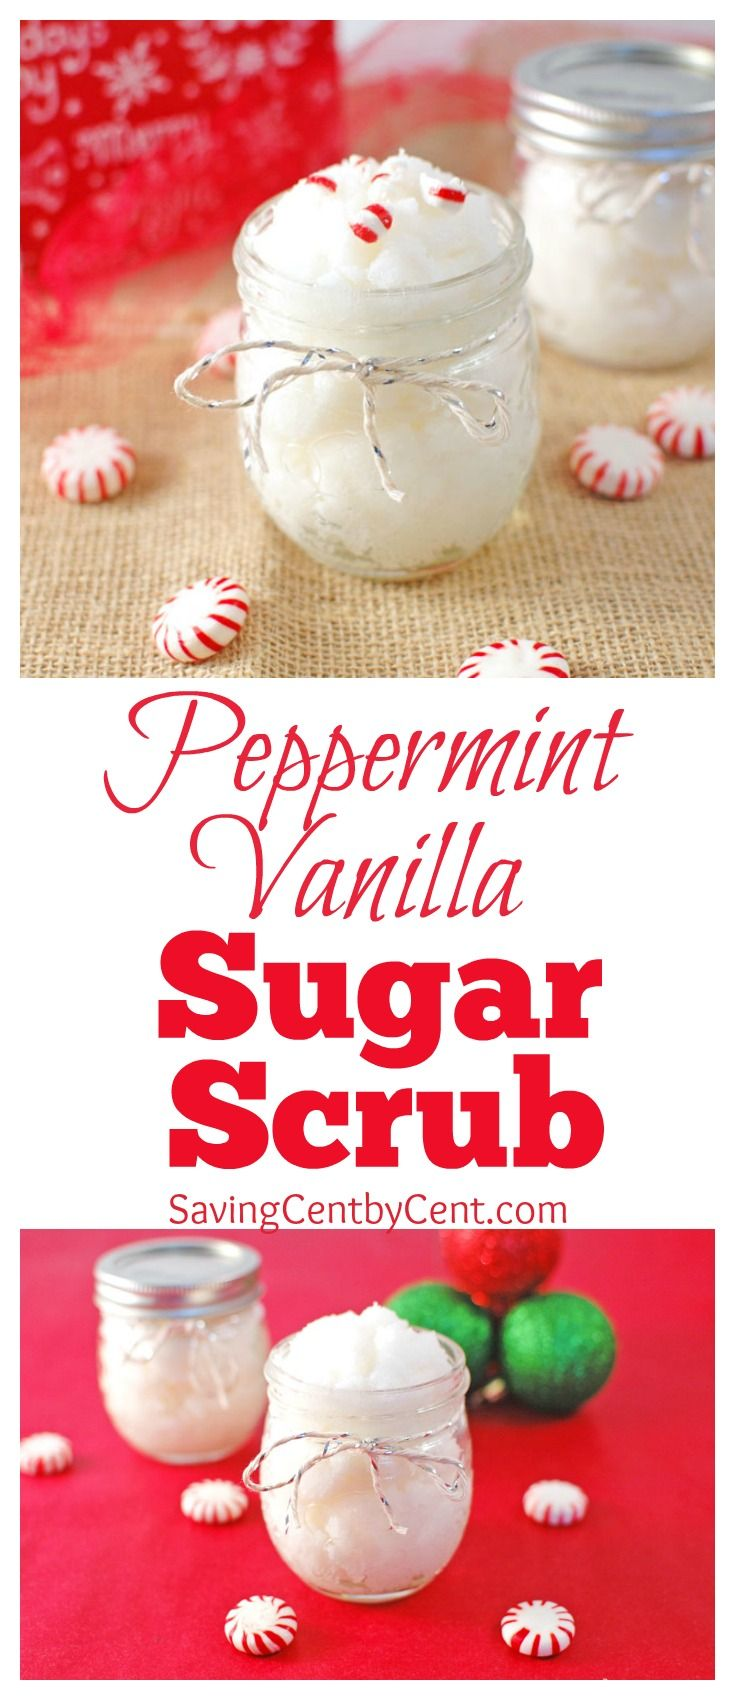 This Peppermint Vanilla Sugar Scrub is a thoughtful and nice gift to give to neighbors and friends for the holidays. And it's less expensive than purchasing a sugar scrub at the store.